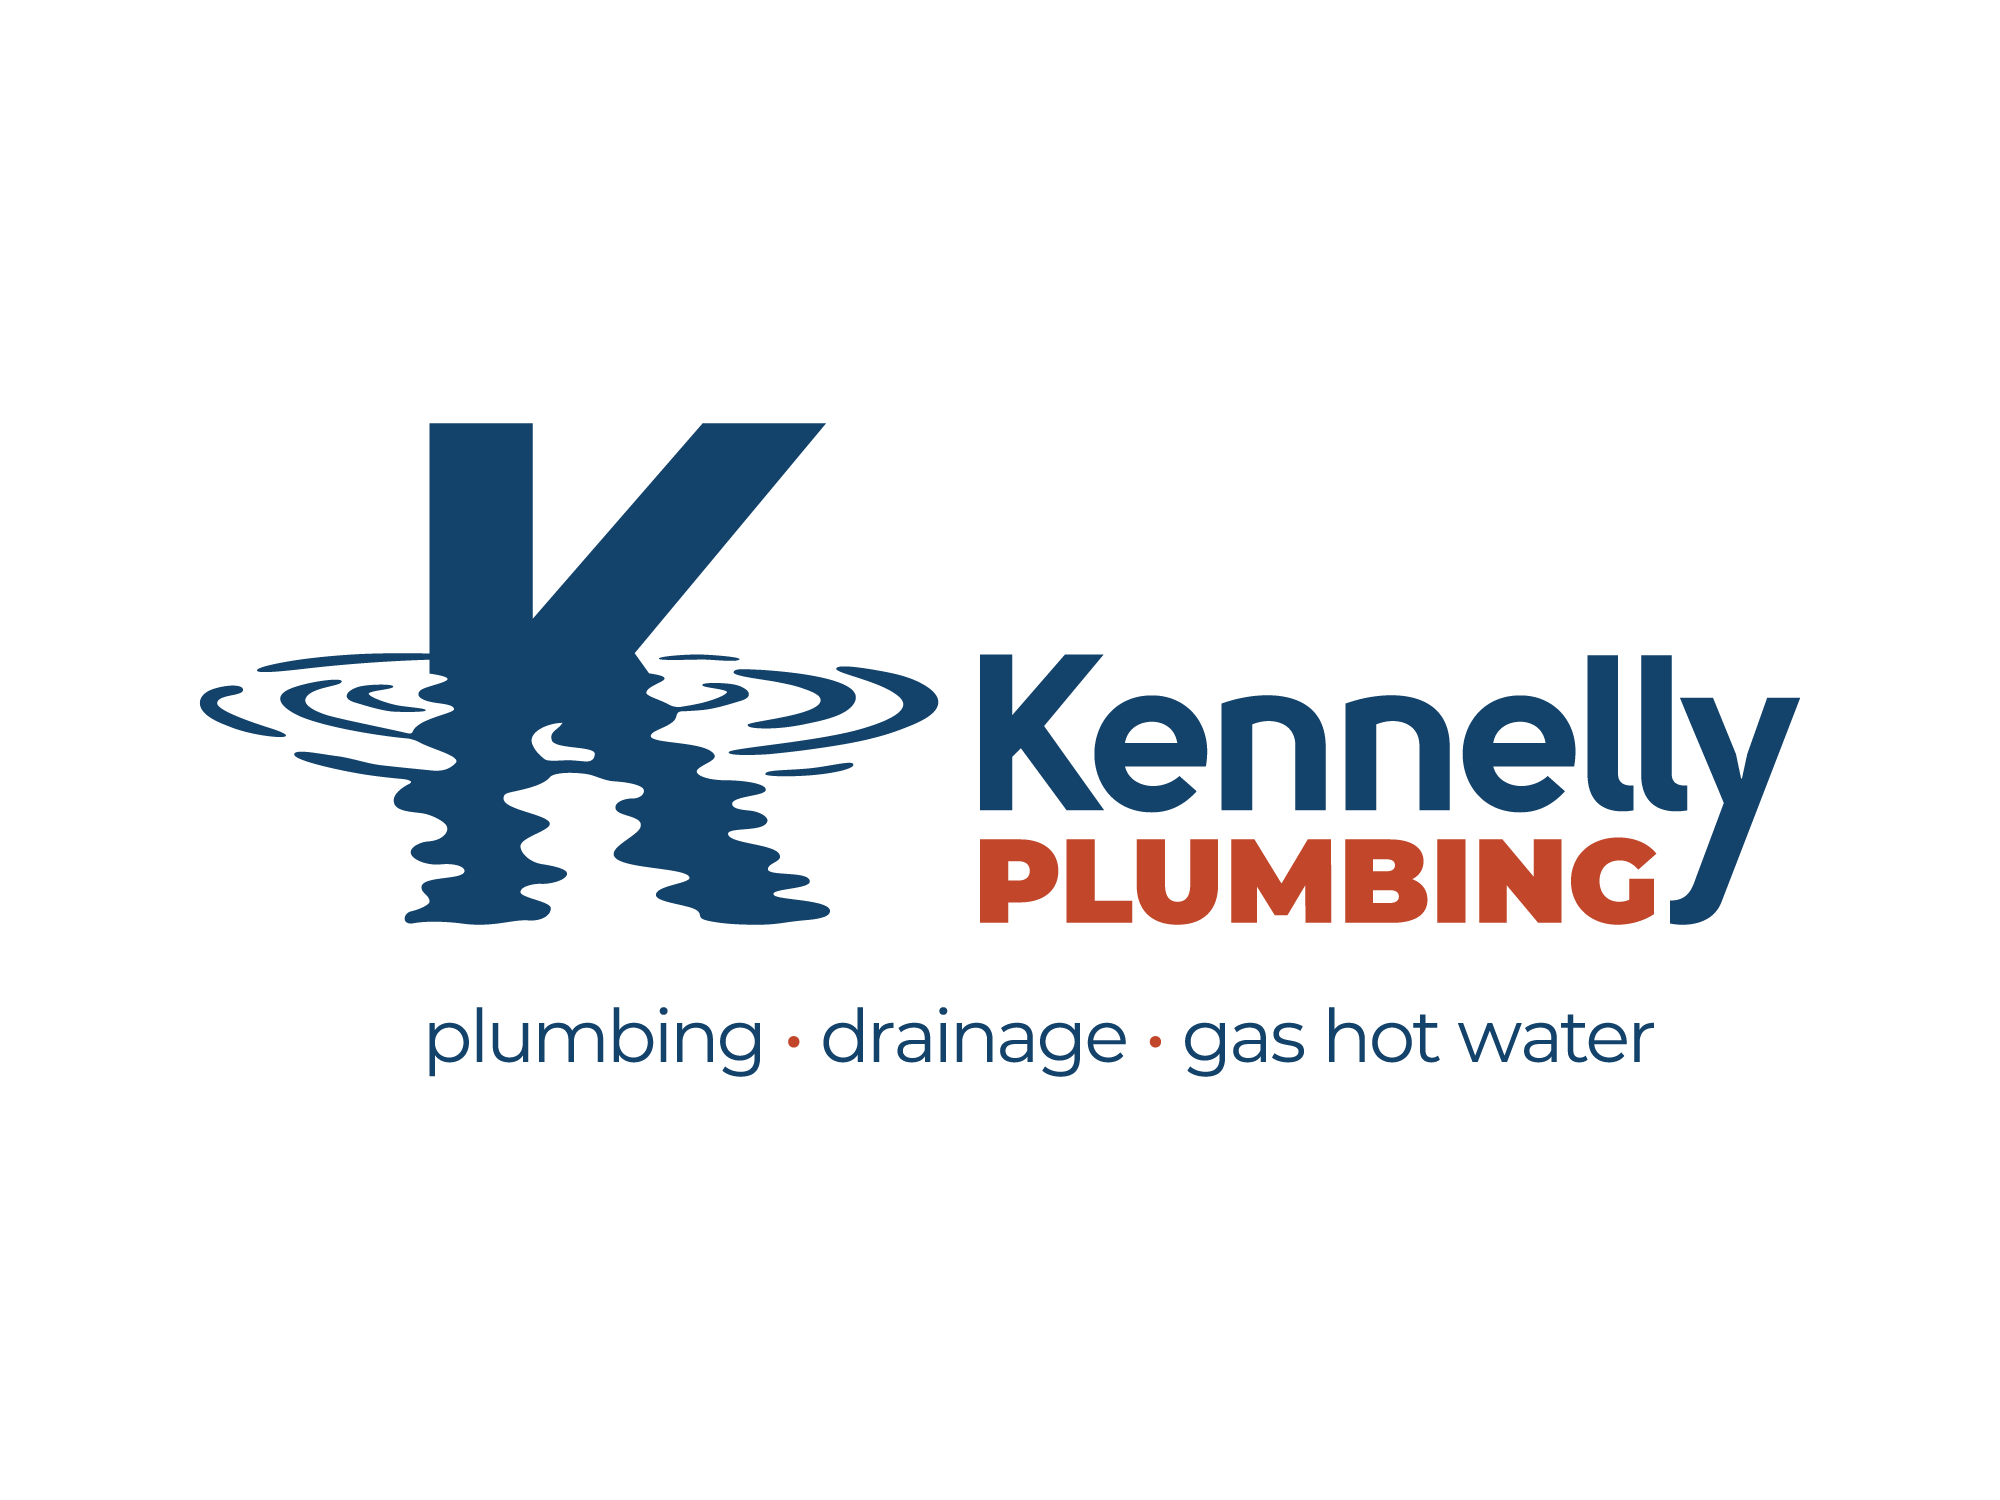 OneZero Design Lab logo-kennelly-plumbing Projects